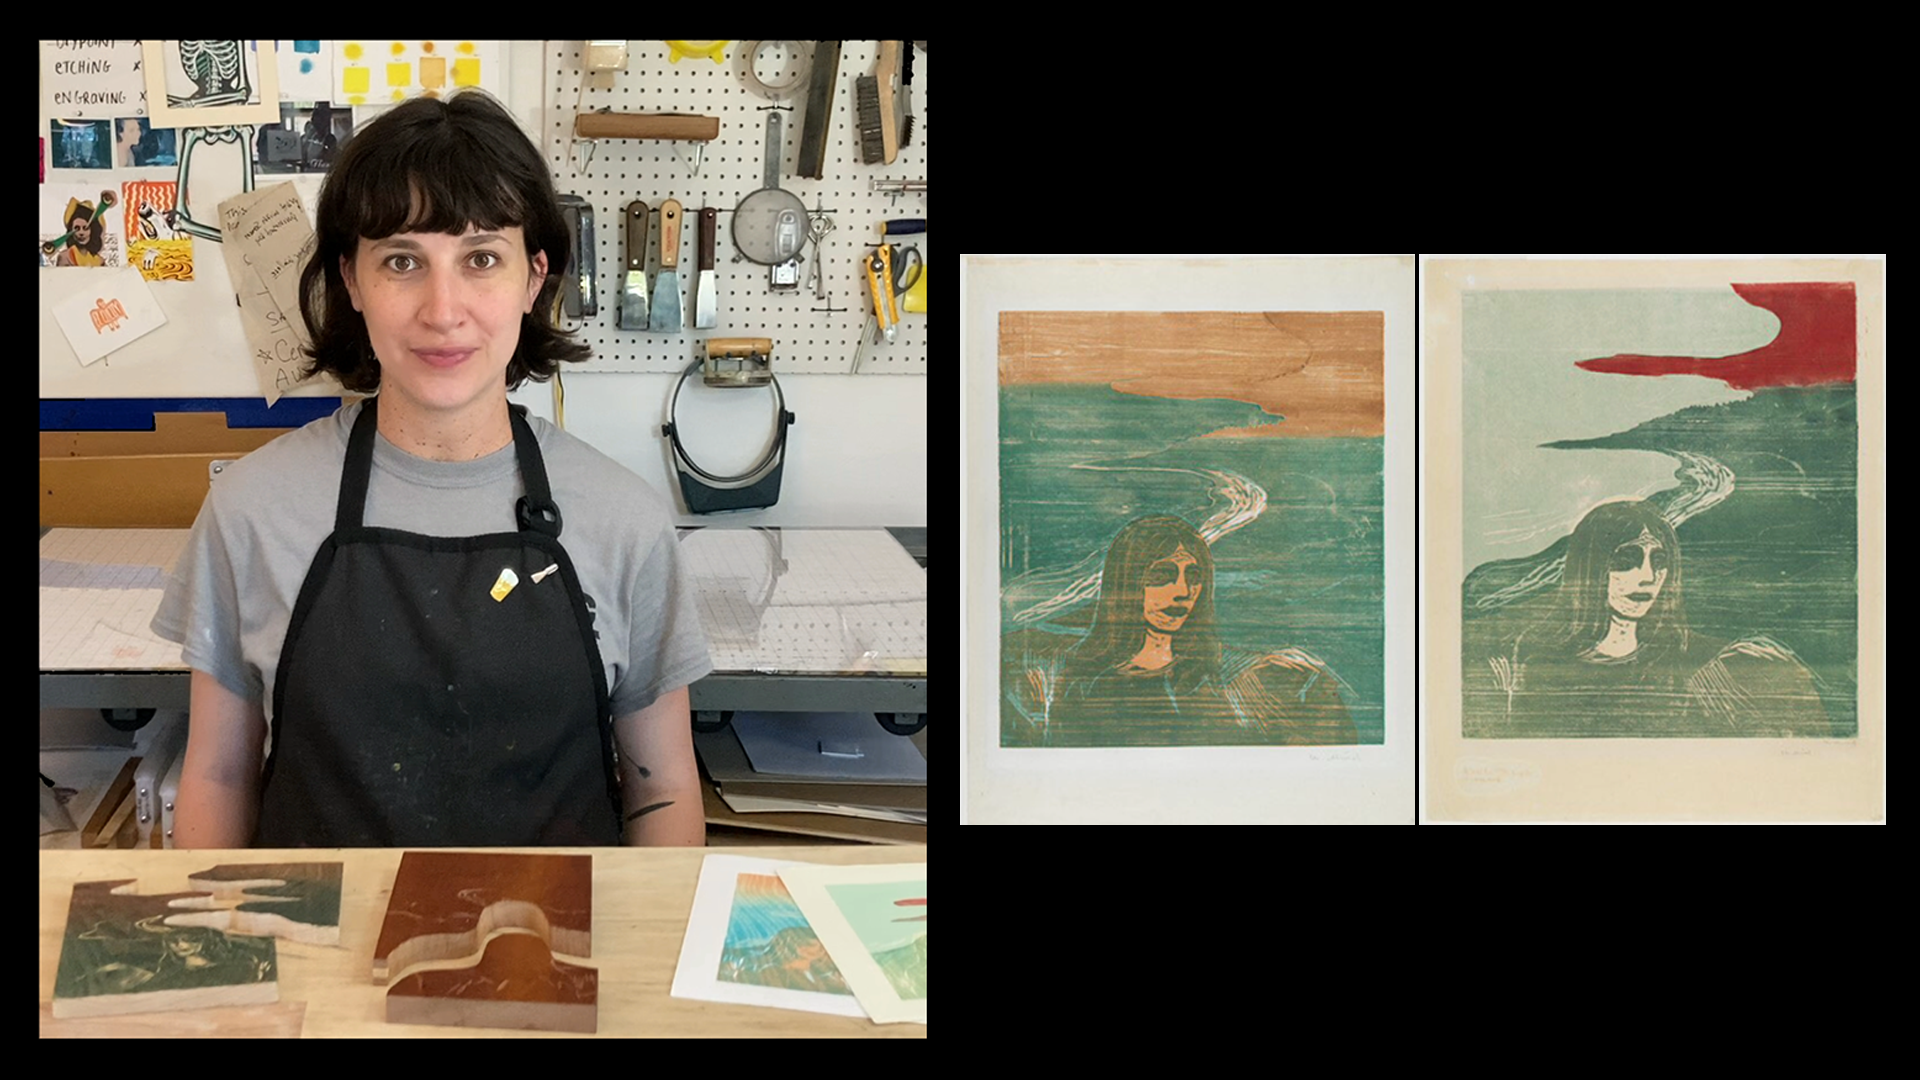 This image shows a split screen. On the left, a woman wearing a black apron sits at a worktable with woodcut blocks and prints. On the right, there are two color prints of a woman's face in three-quarter profile with a shoreline behind her.